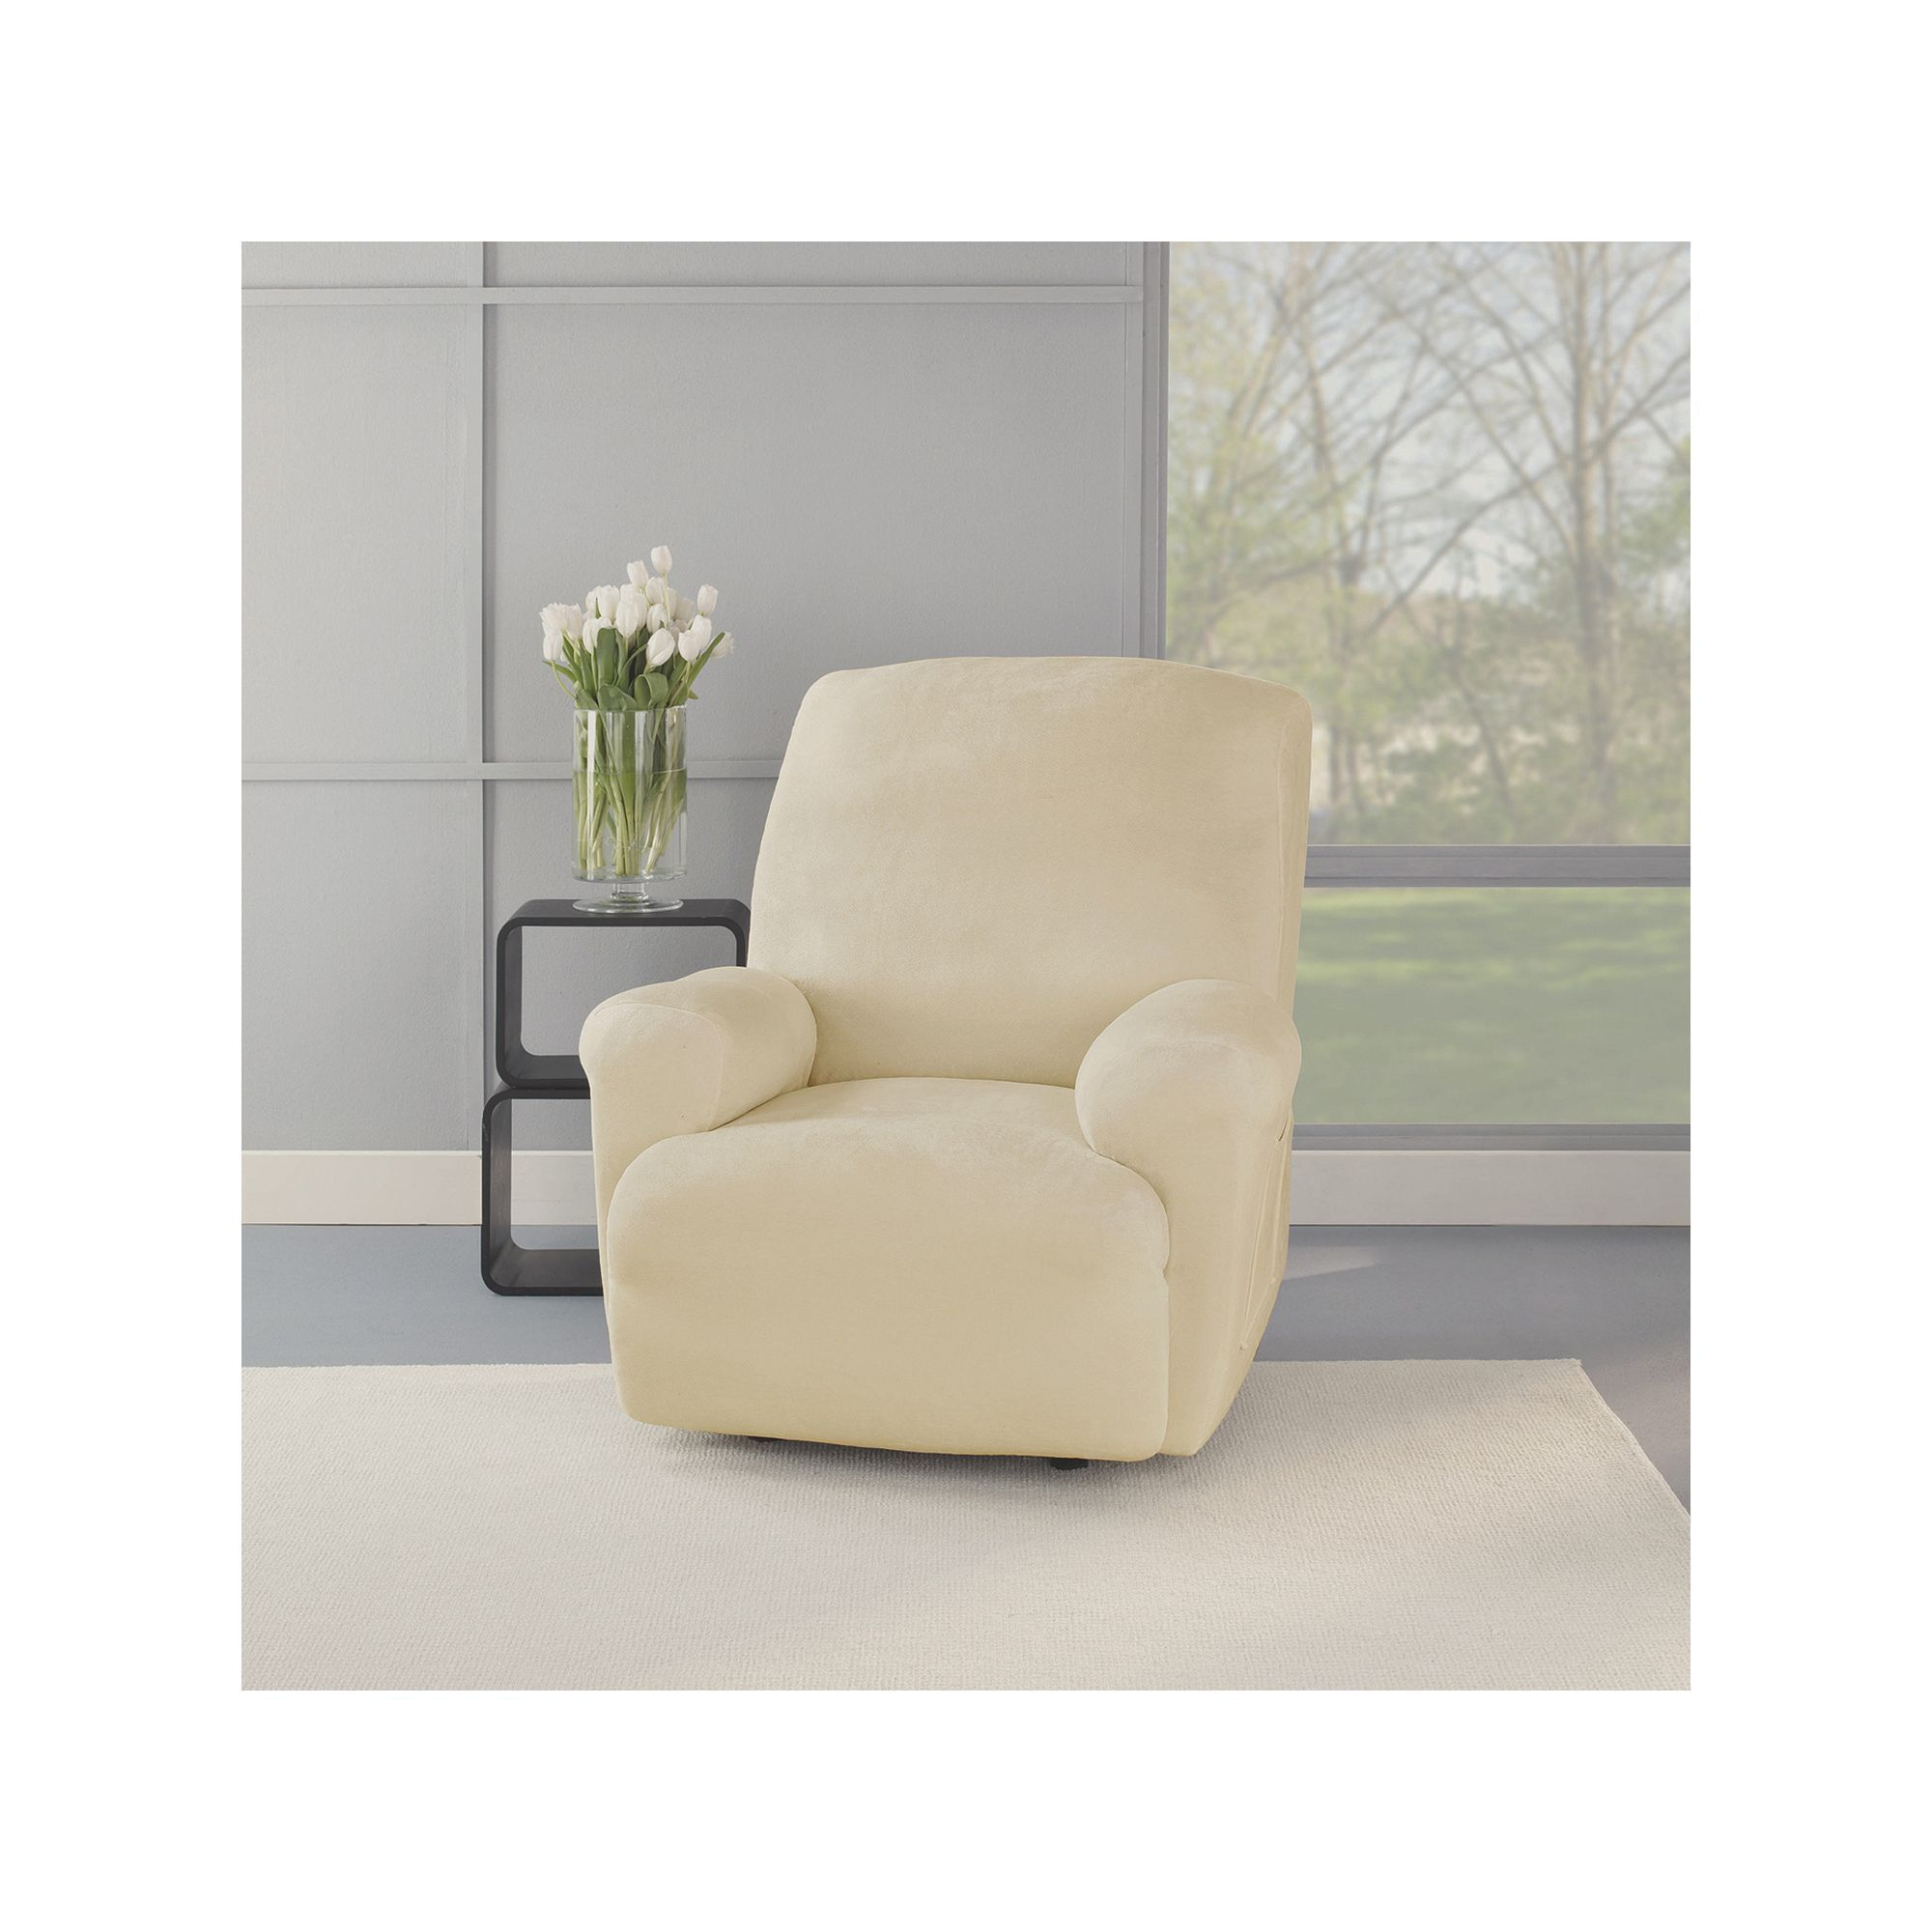 Sure Fit Stretch Plush Recliner Slipcover White Recliner Slipcover Plush Recliner Slipcovers For Chairs